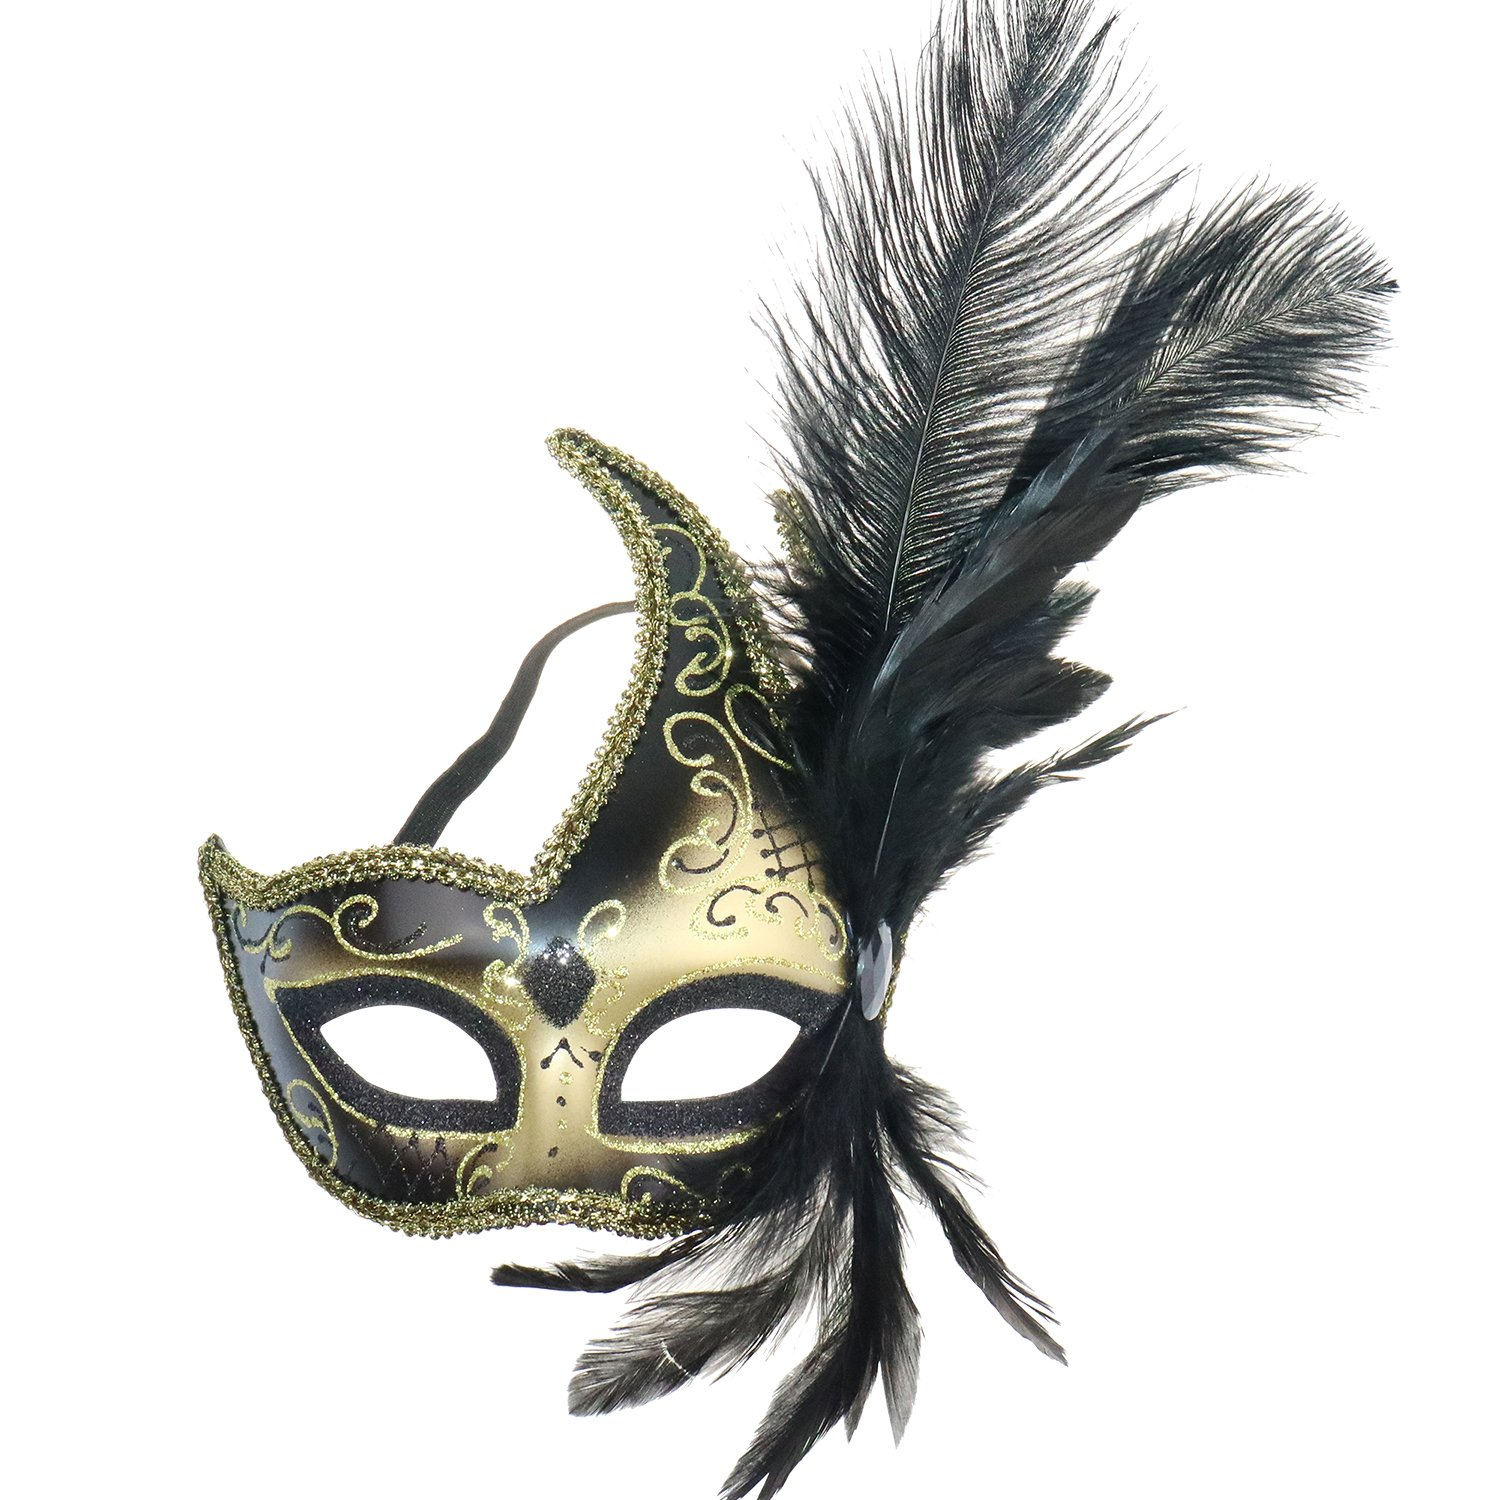 Venetian Fancy Dress Mask Fluff Feather Diamond Lace for Party Ball Masks FBG001